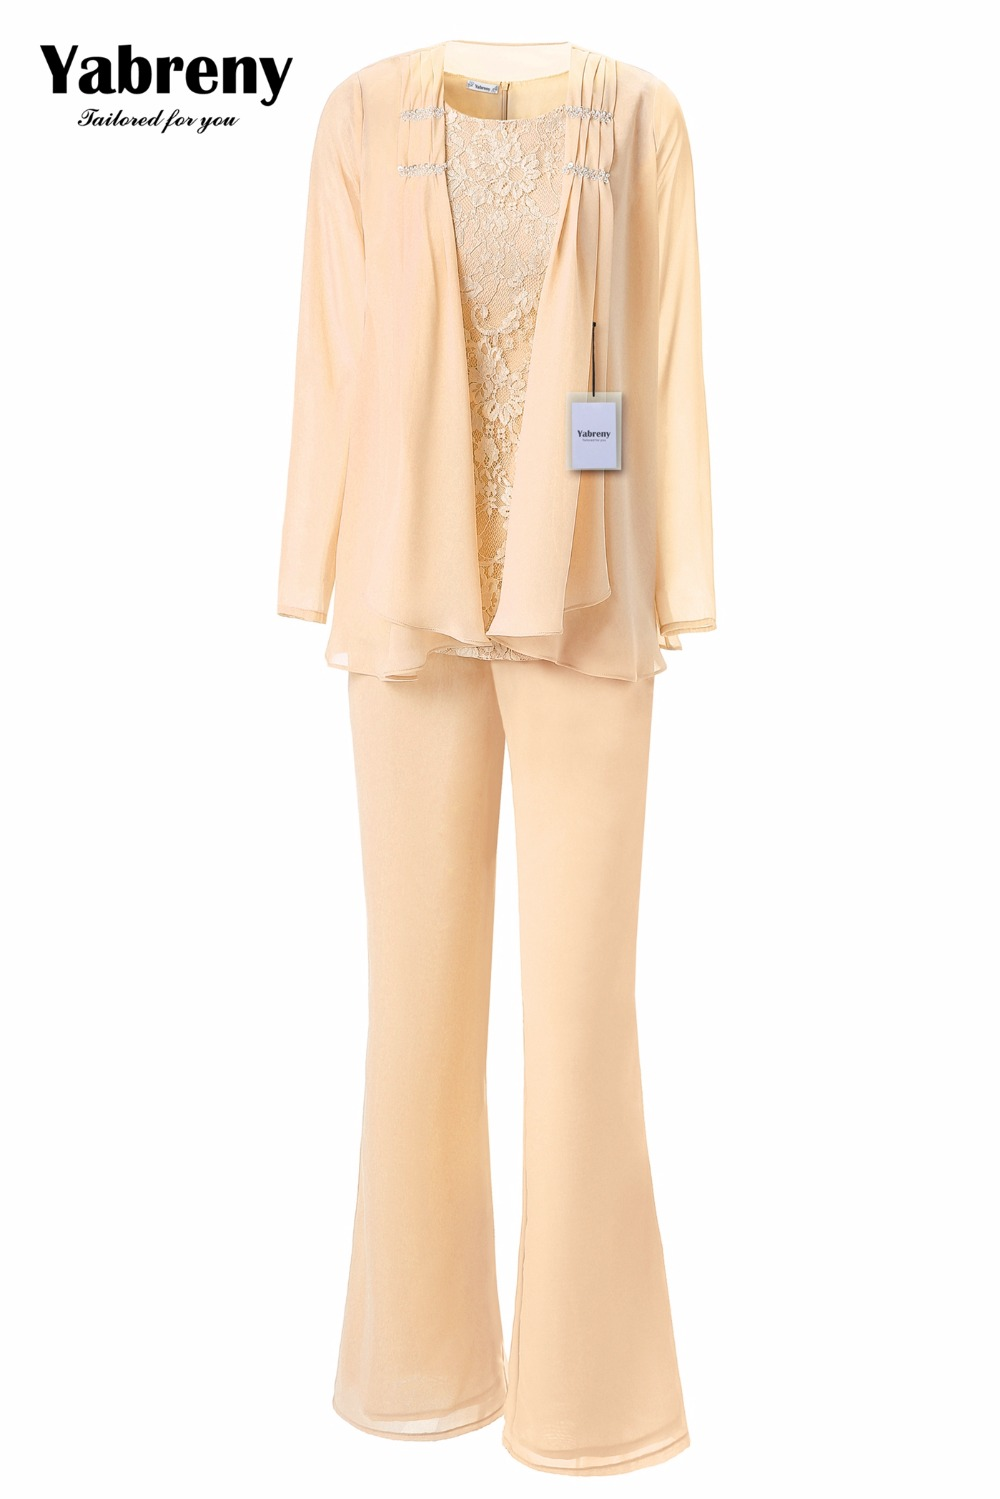 Image 5 - Yabreny Elegant Mother of the Bride Pants suit Lavender Chiffon Outfit for Special occasion MT001704 2-in Mother of the Bride Dresses from Weddings & Events